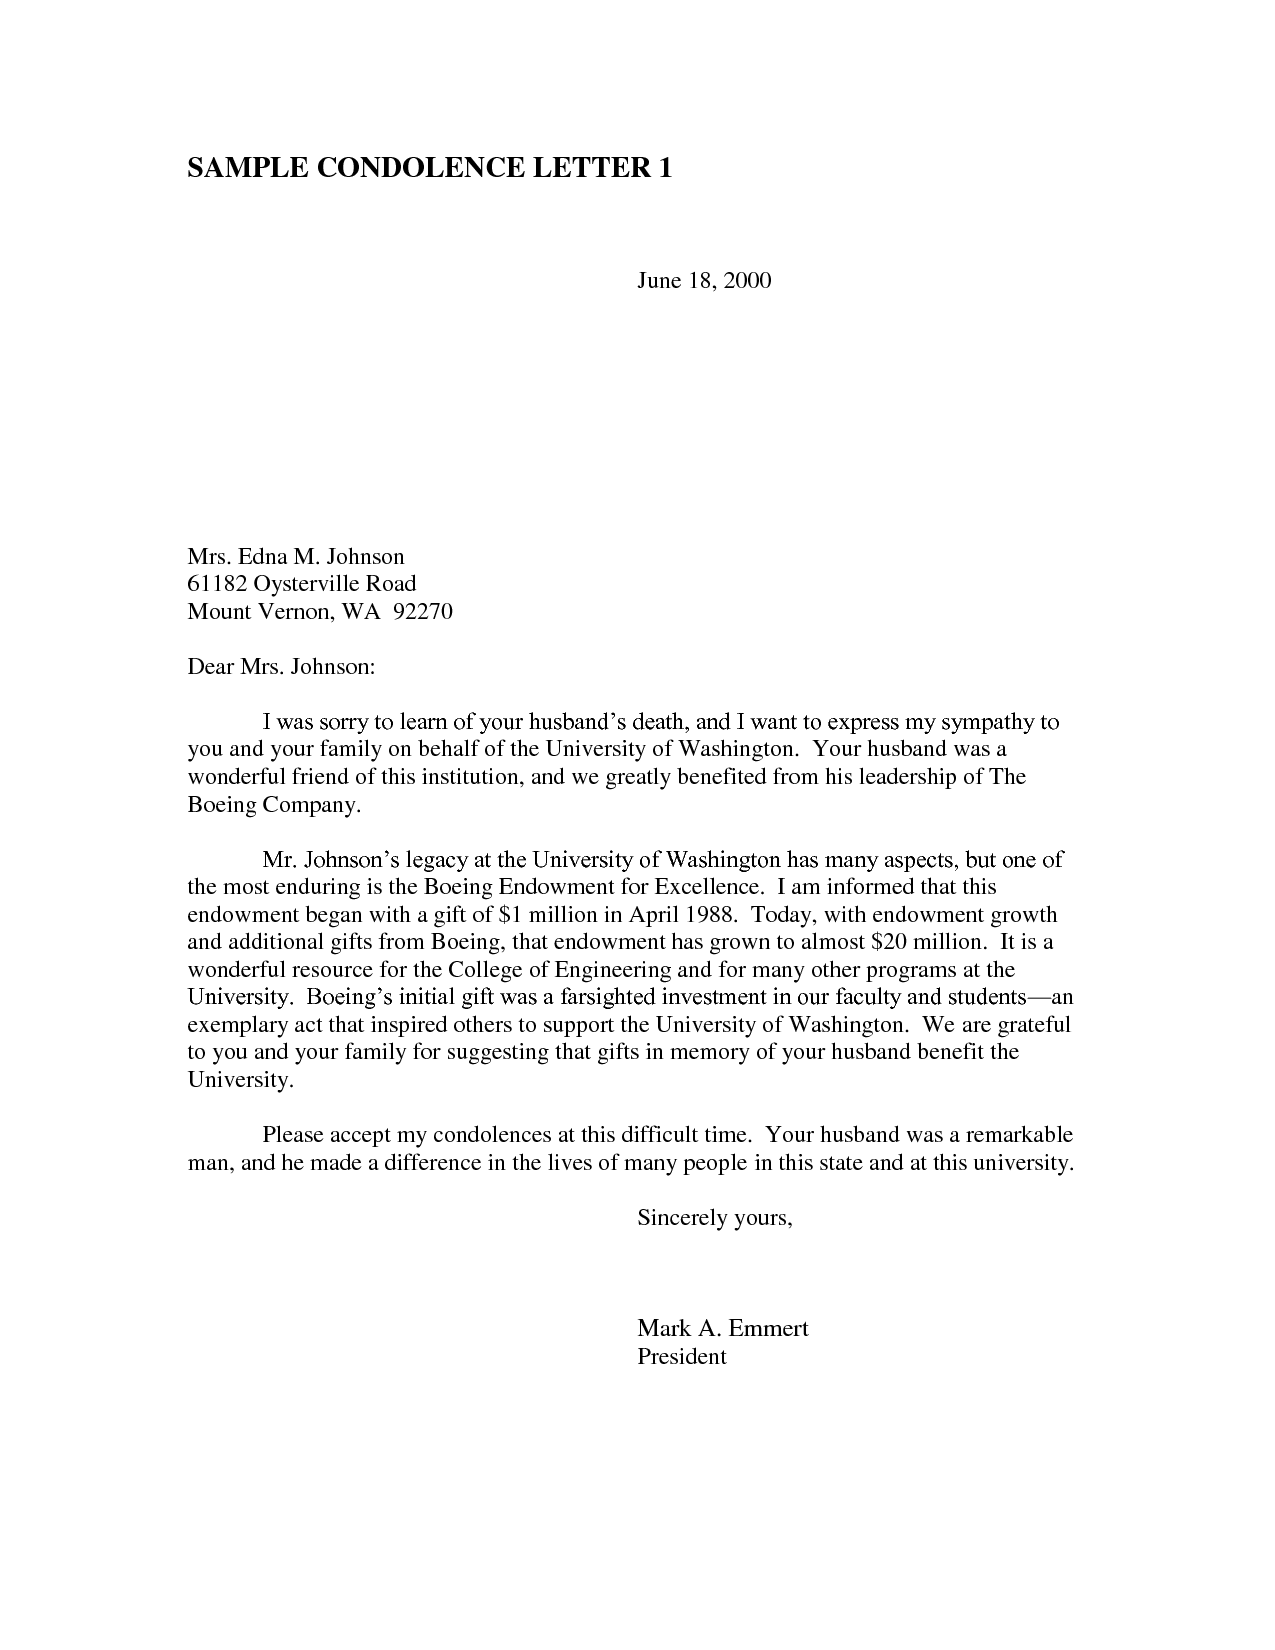 Business Condolence Letter - Free Sample Business Condolence Letter is ...